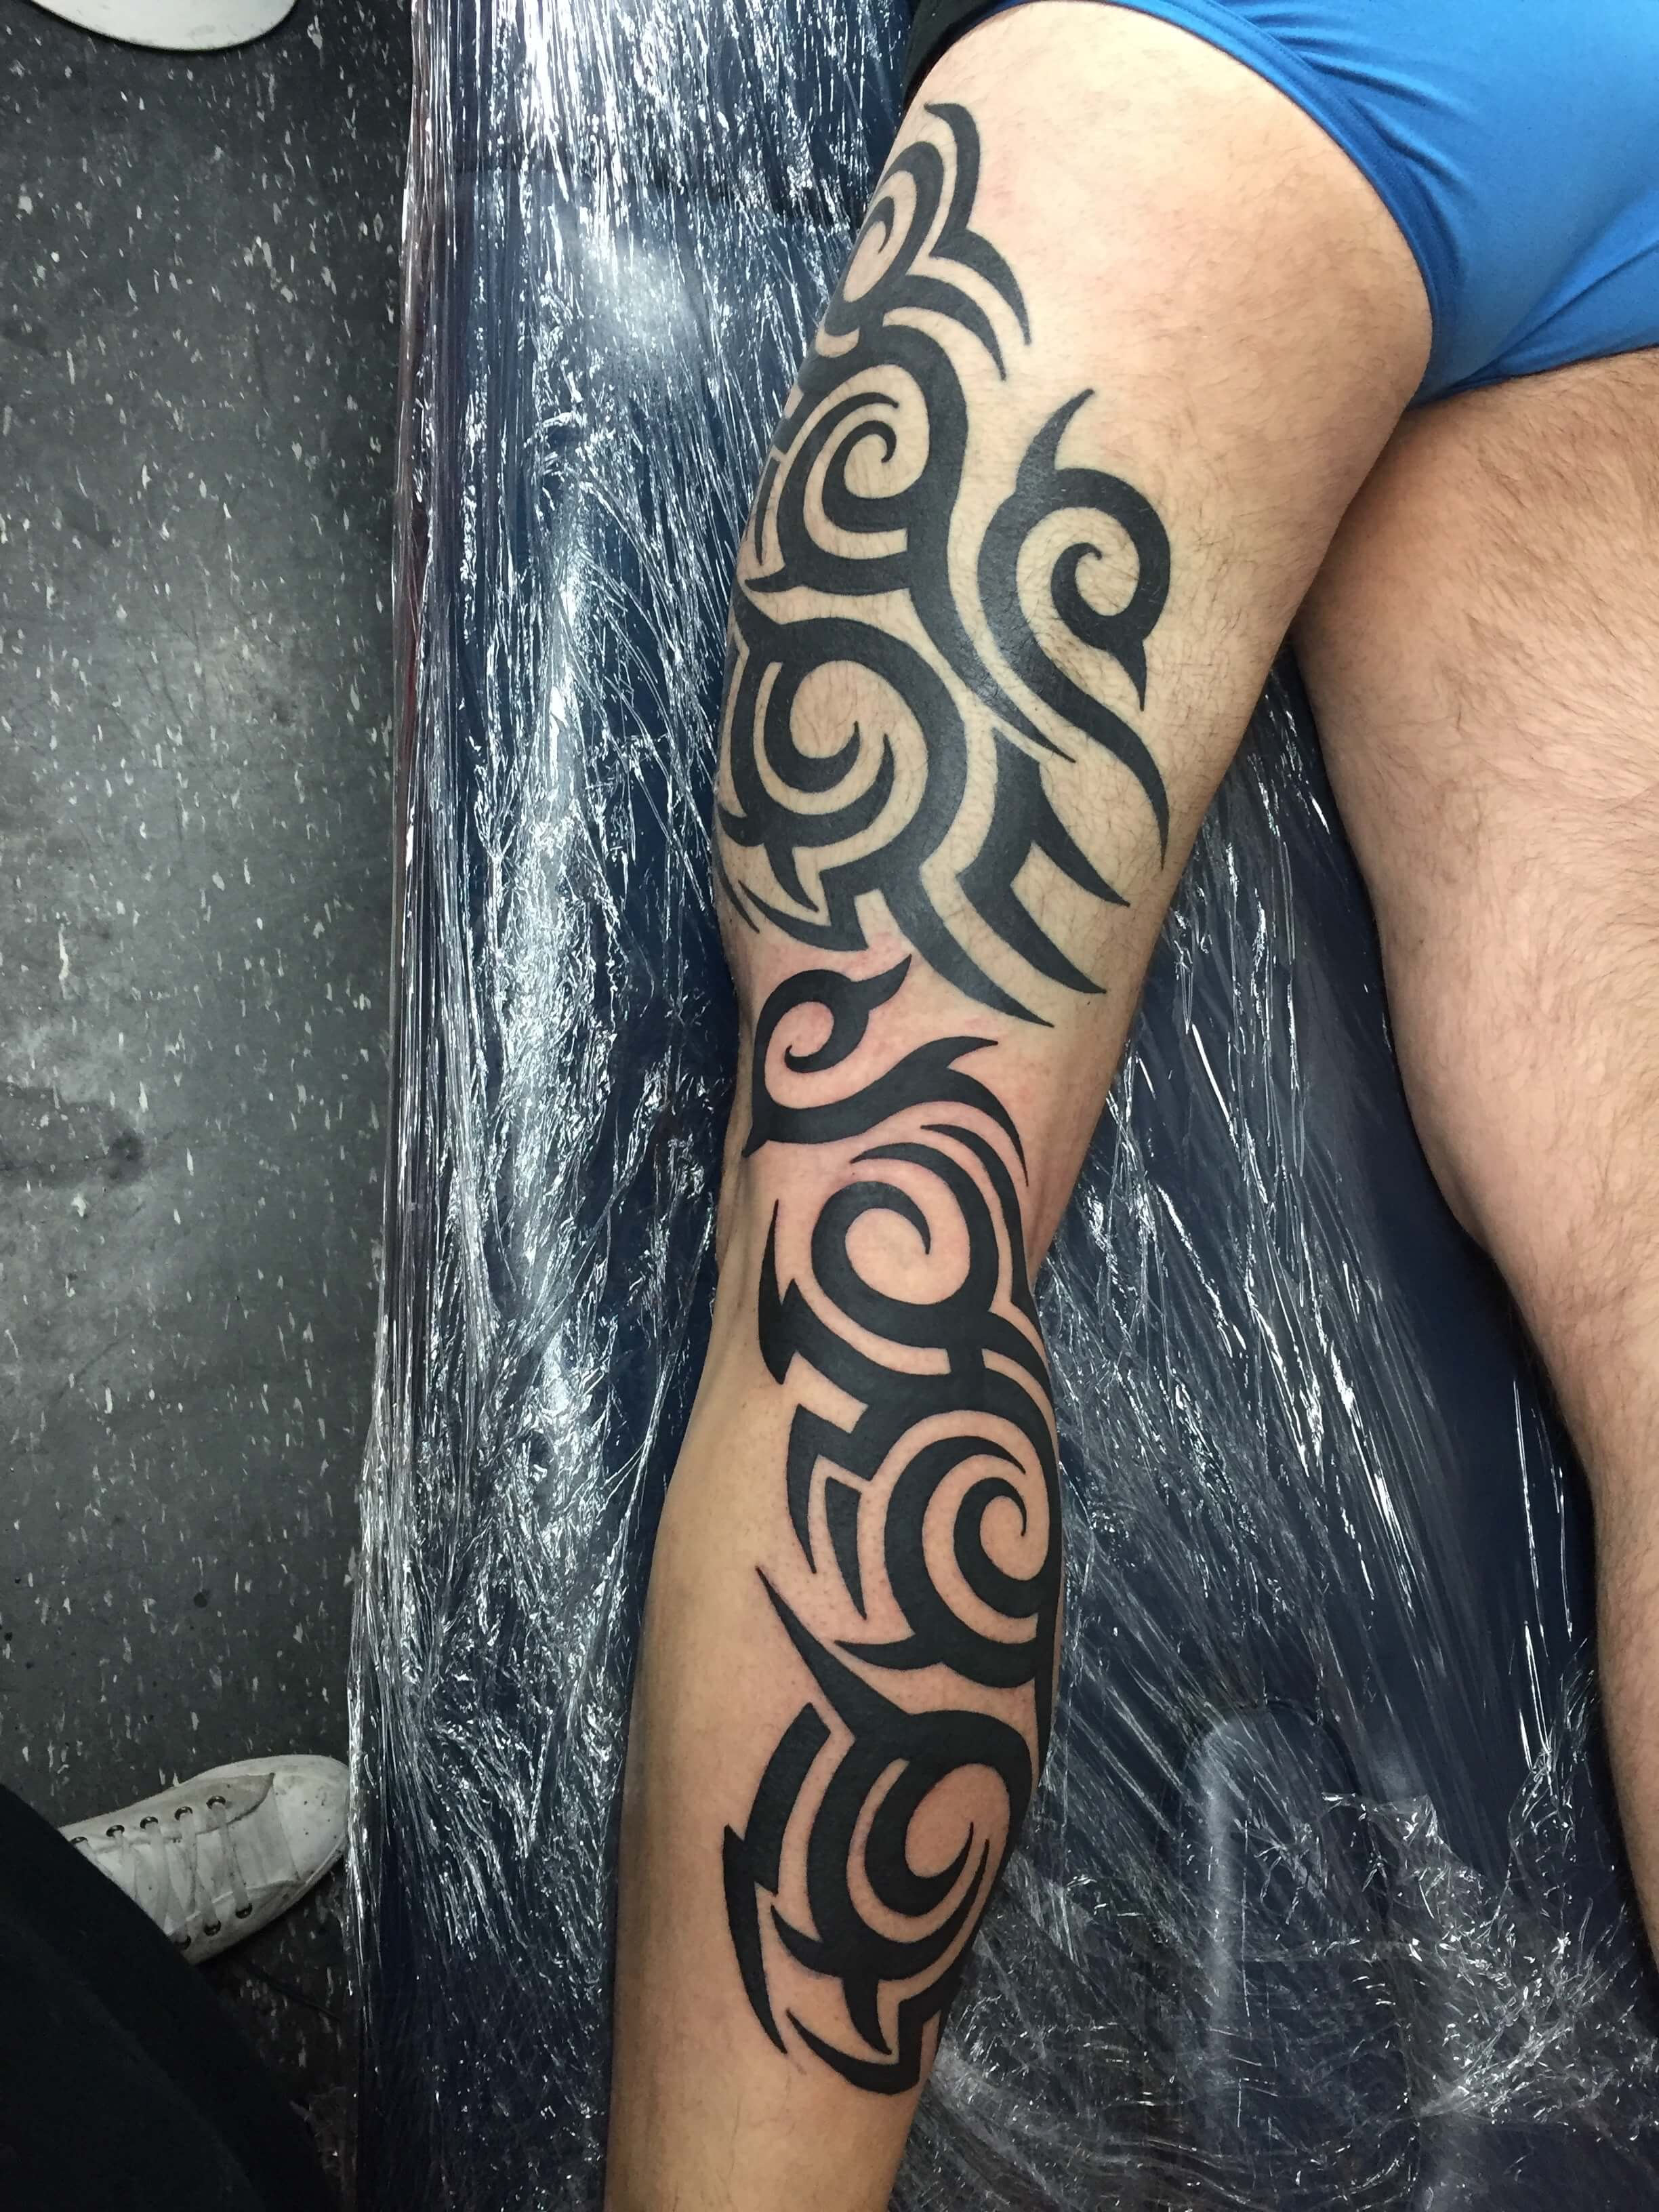 Tribal full leg